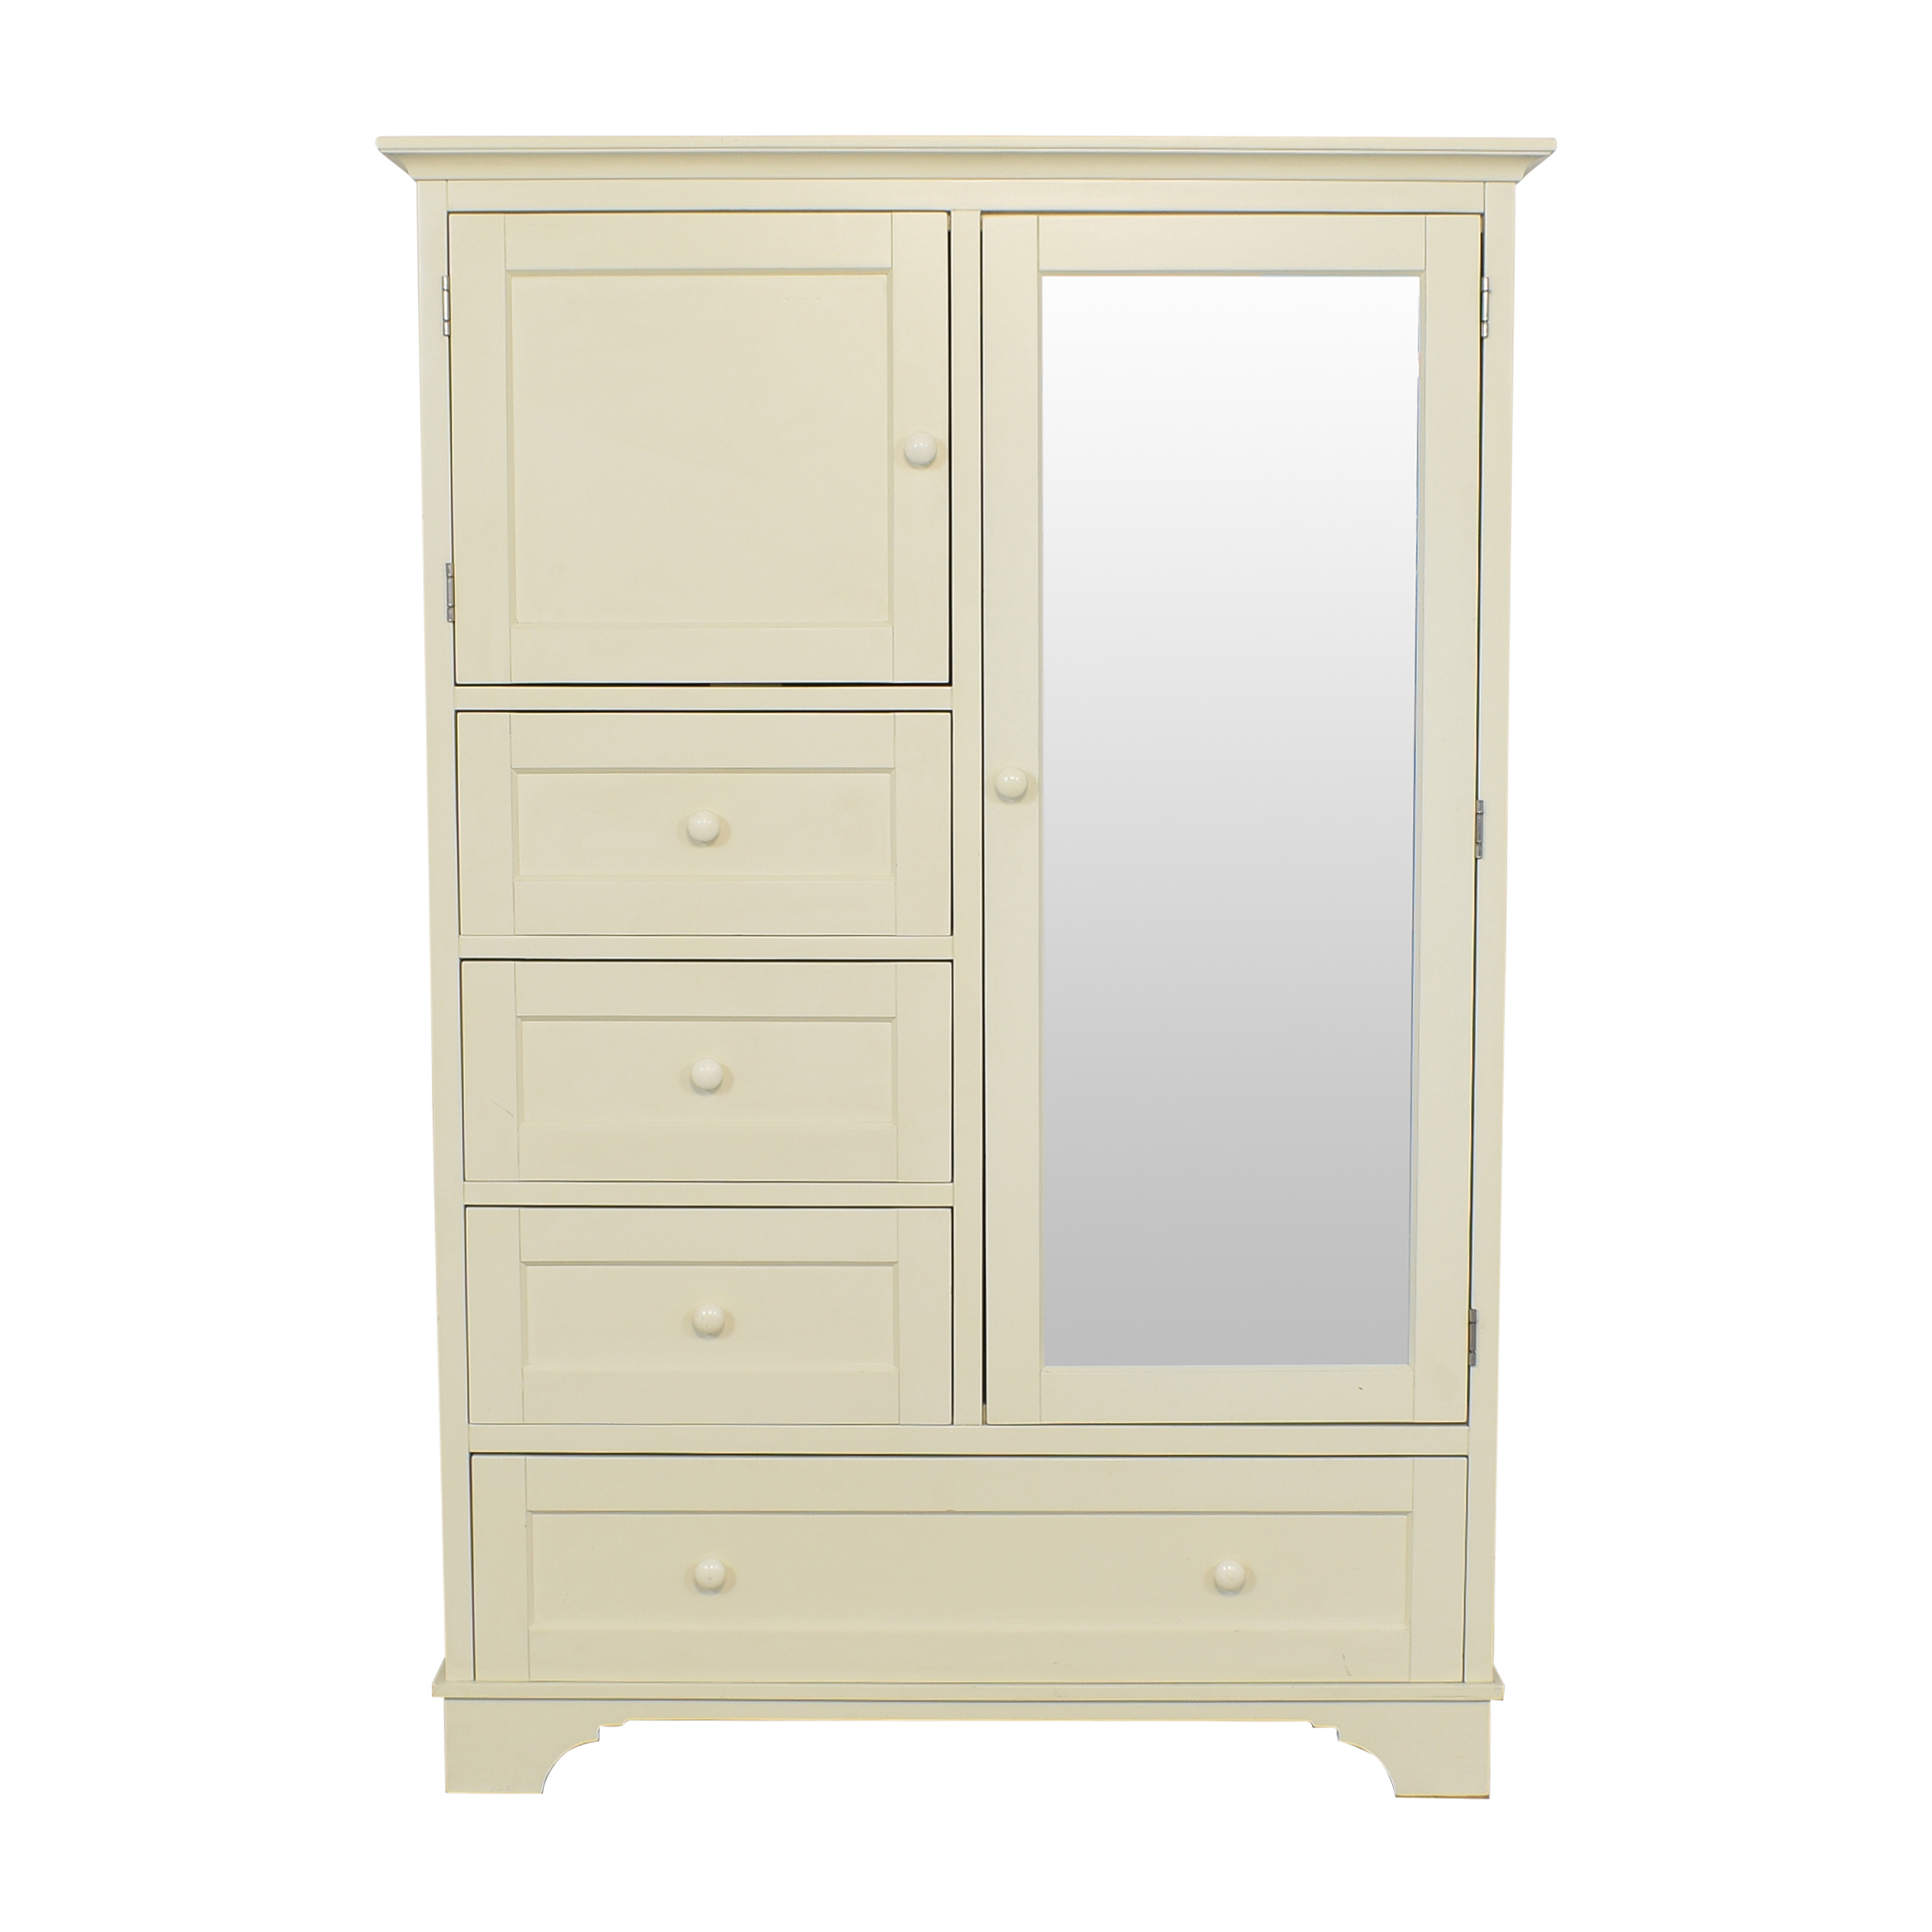 Pottery Barn Farmhouse Style Wardrobe / Wardrobes & Armoires